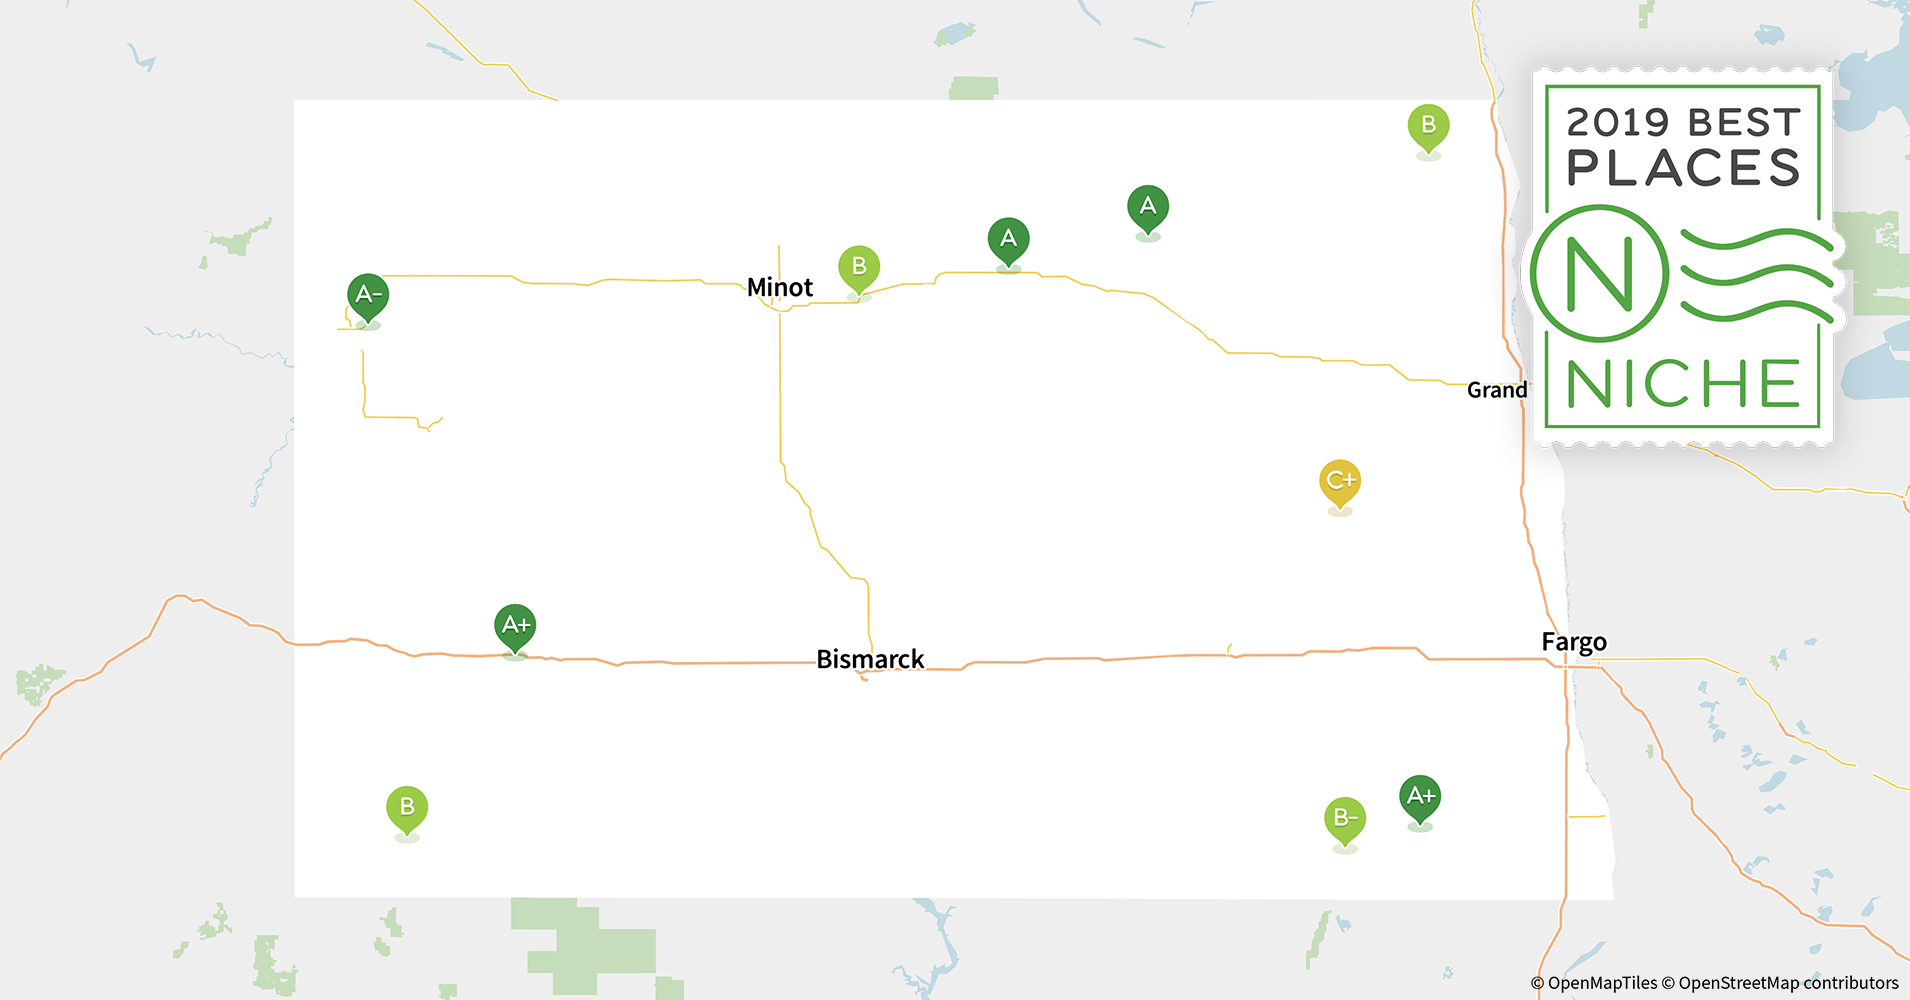 2019 Most Diverse Places to Live in North Dakota - Niche Map Of Cities Near Minot North Dakota on map of arcata ca, map of carson city nevada, map of troy new york, map of casa grande arizona, map of la grande oregon, map of evanston illinois, map of spearfish south dakota, map of terranea, map of alamogordo new mexico, map of north minot nd, map of aberdeen south dakota, map of new haven connecticut, map of minot state, map of minot beach, map nd north dakota, map of winter garden florida, map of cedar rapids iowa, map of boone iowa, map of ashland ohio, map of hutchinson kansas,